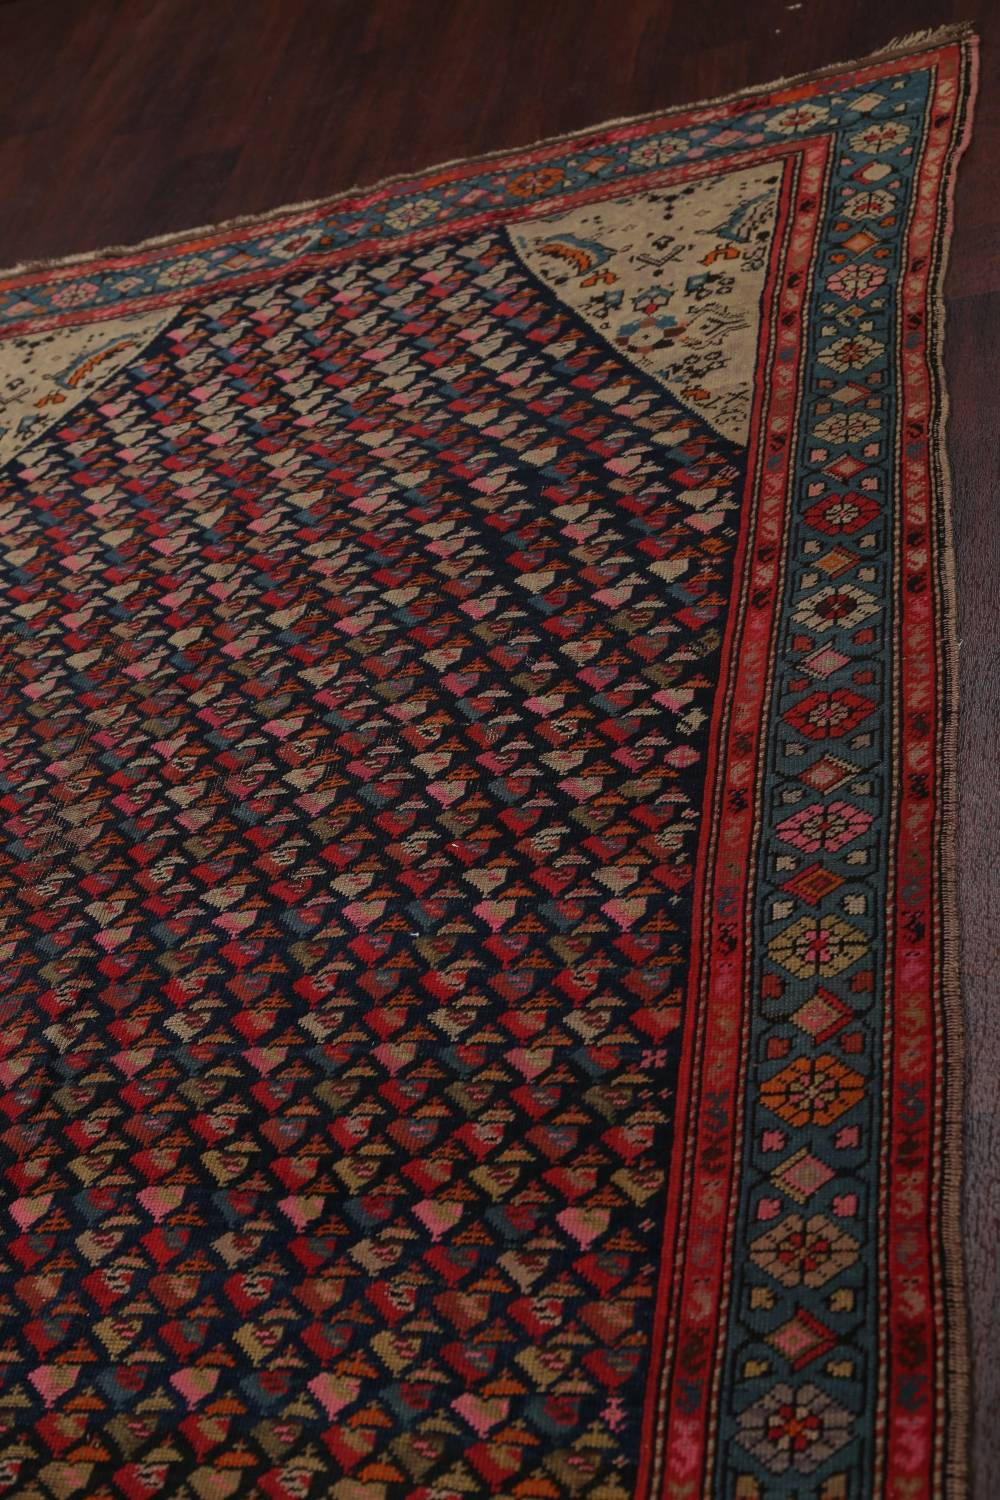 Pre-1900 Karabakh Bote Russian Oriental Hand-Knotted 5x16 Runner Rug image 15